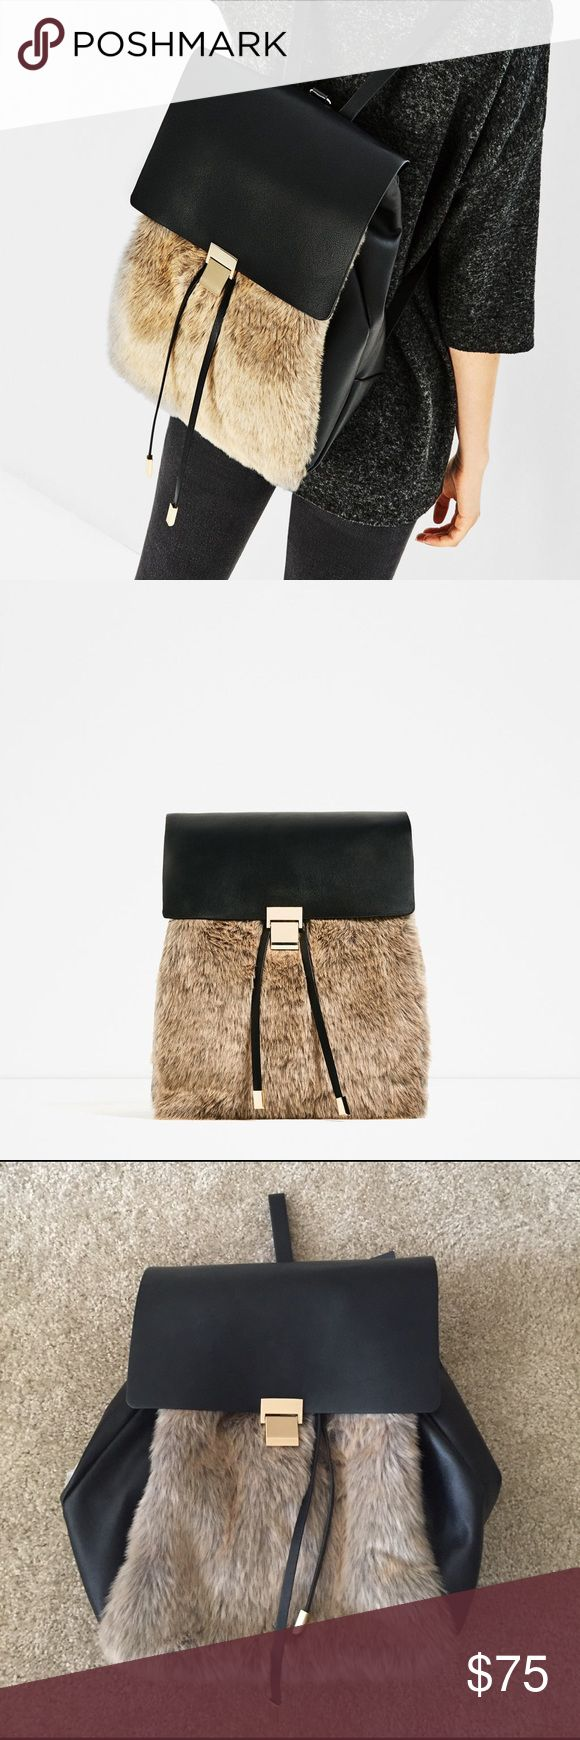 NWT Zara Leather Fur Backpack NWT. very on trend with the use of leather and fur. Fur reminds me of the Gucci fur/leather shoes. Inner compartment. Zara Bags Backpacks